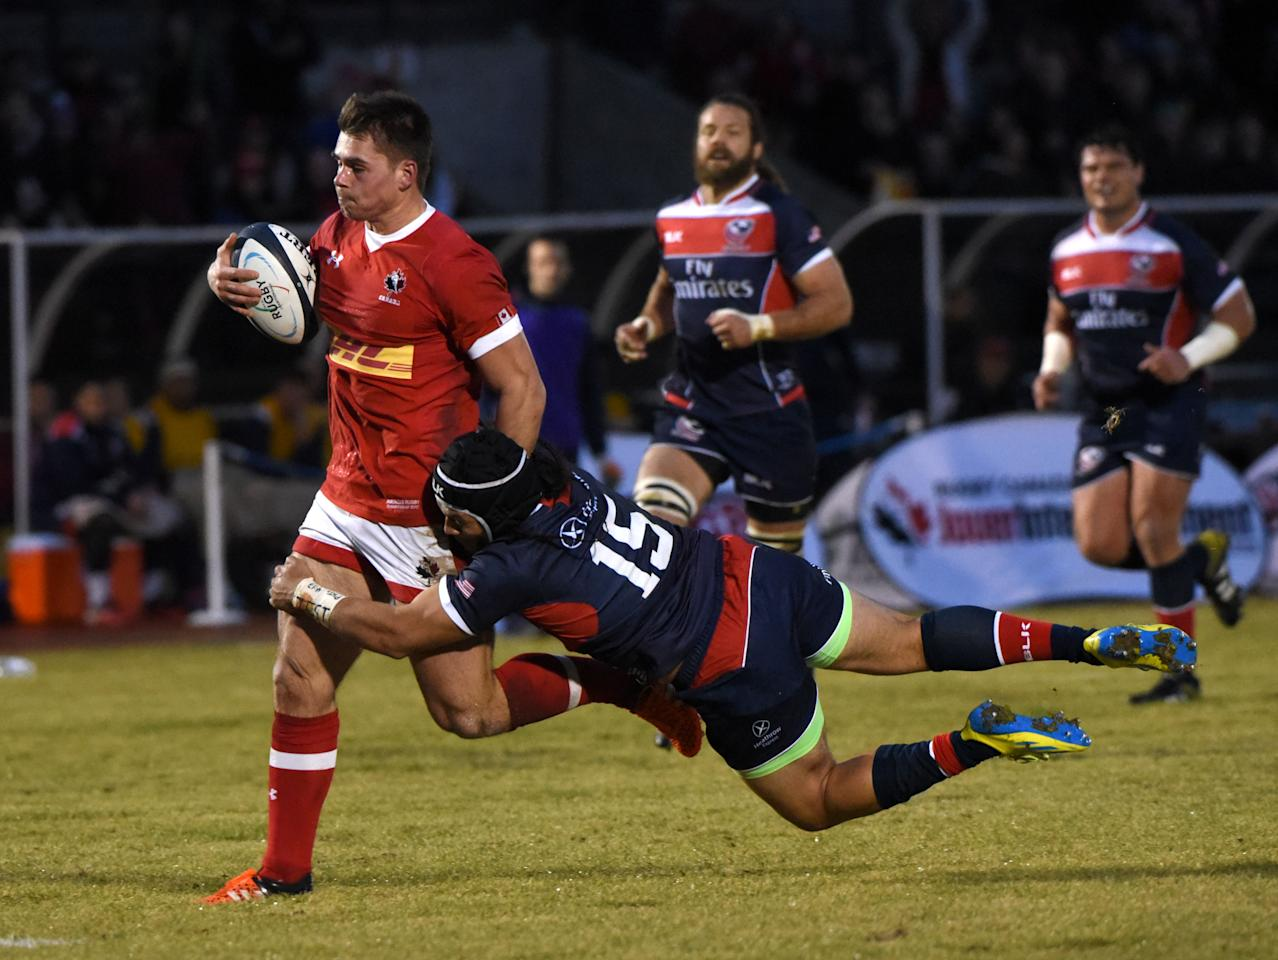 Mike Te'o (R) of the USA makes a tackle against Canada (L) during their Americas Rugby Championship match at Swangard Stadium in Burnaby, BC, Canada February 18, 2017.USA won 51-34. (AFP Photo/Don MacKinnon)